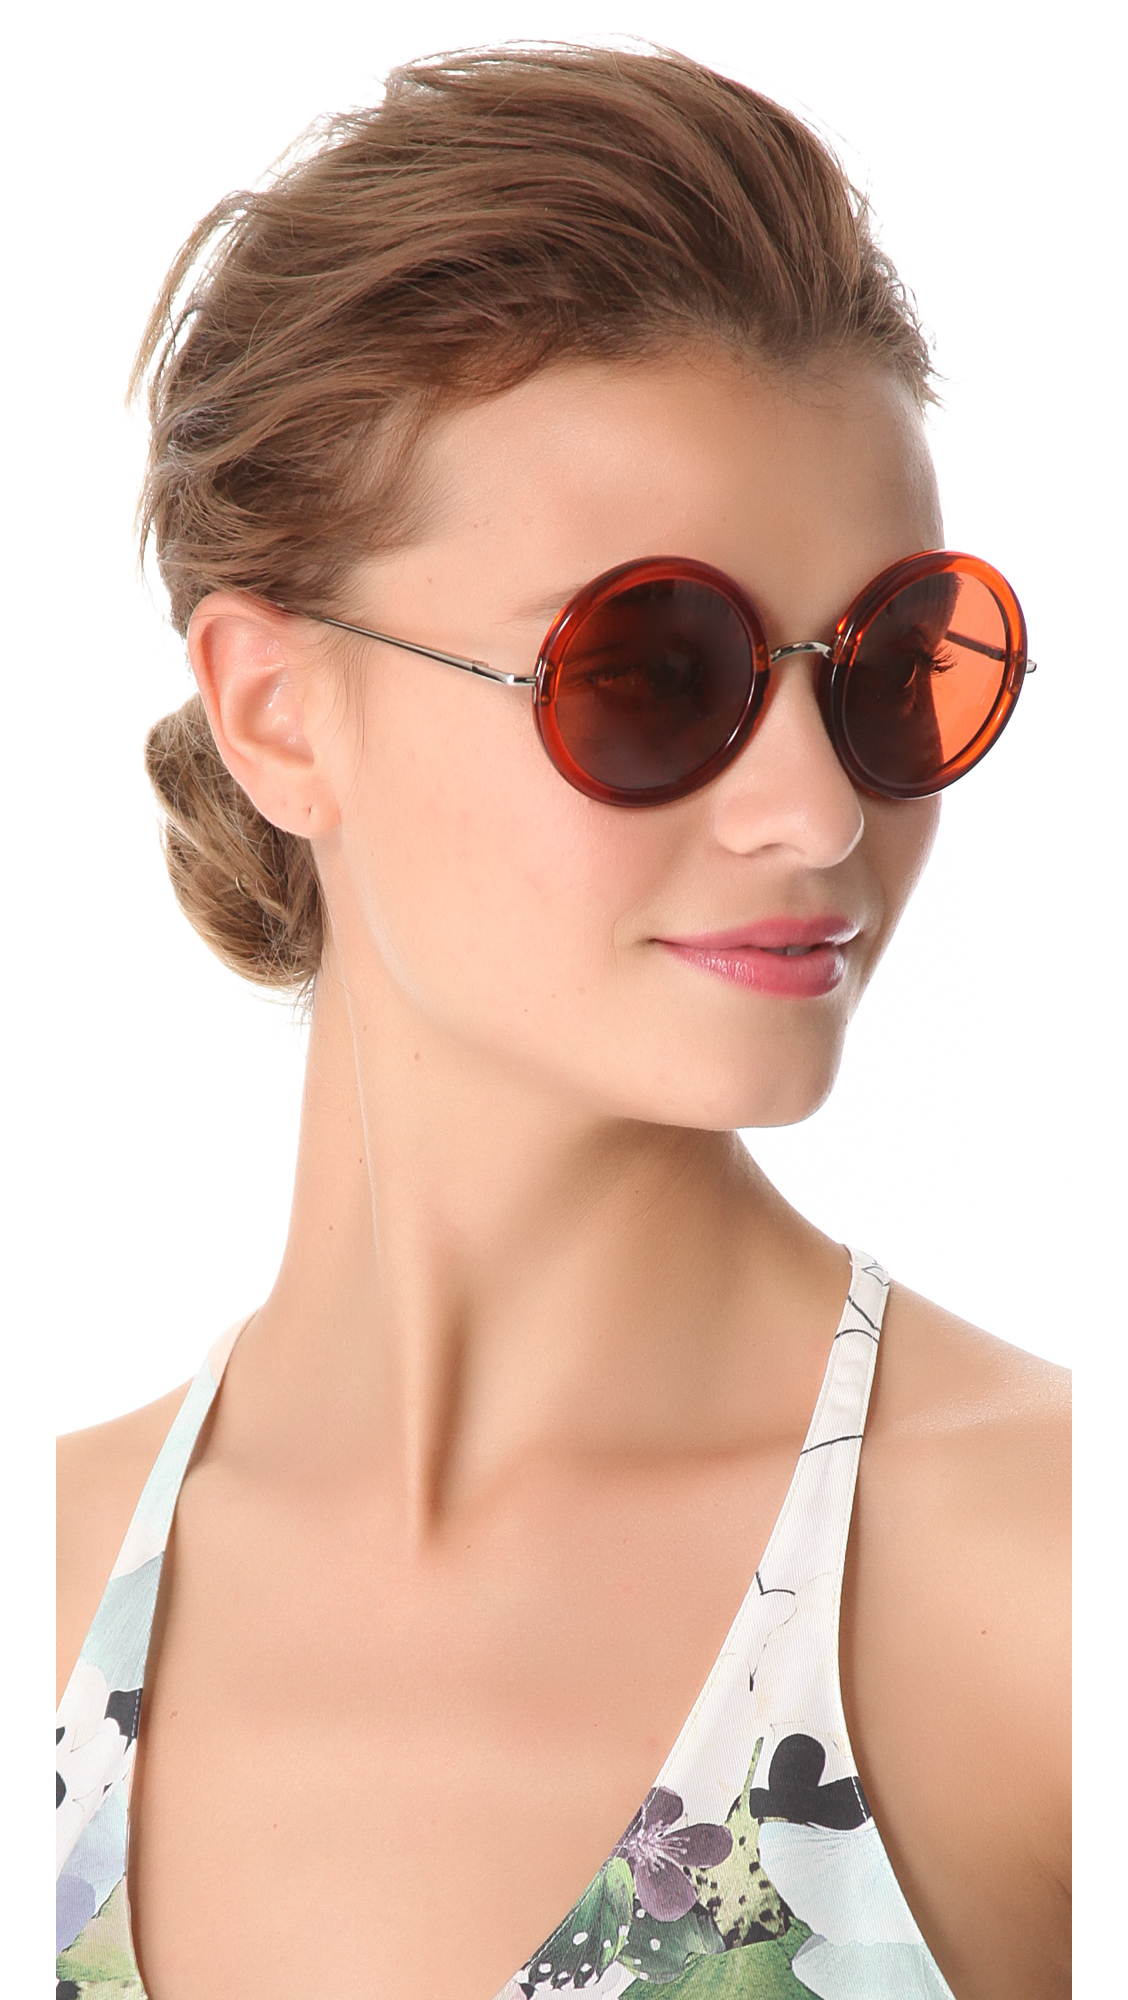 cc58ad727f34 The Row Oversized Round Sunglasses